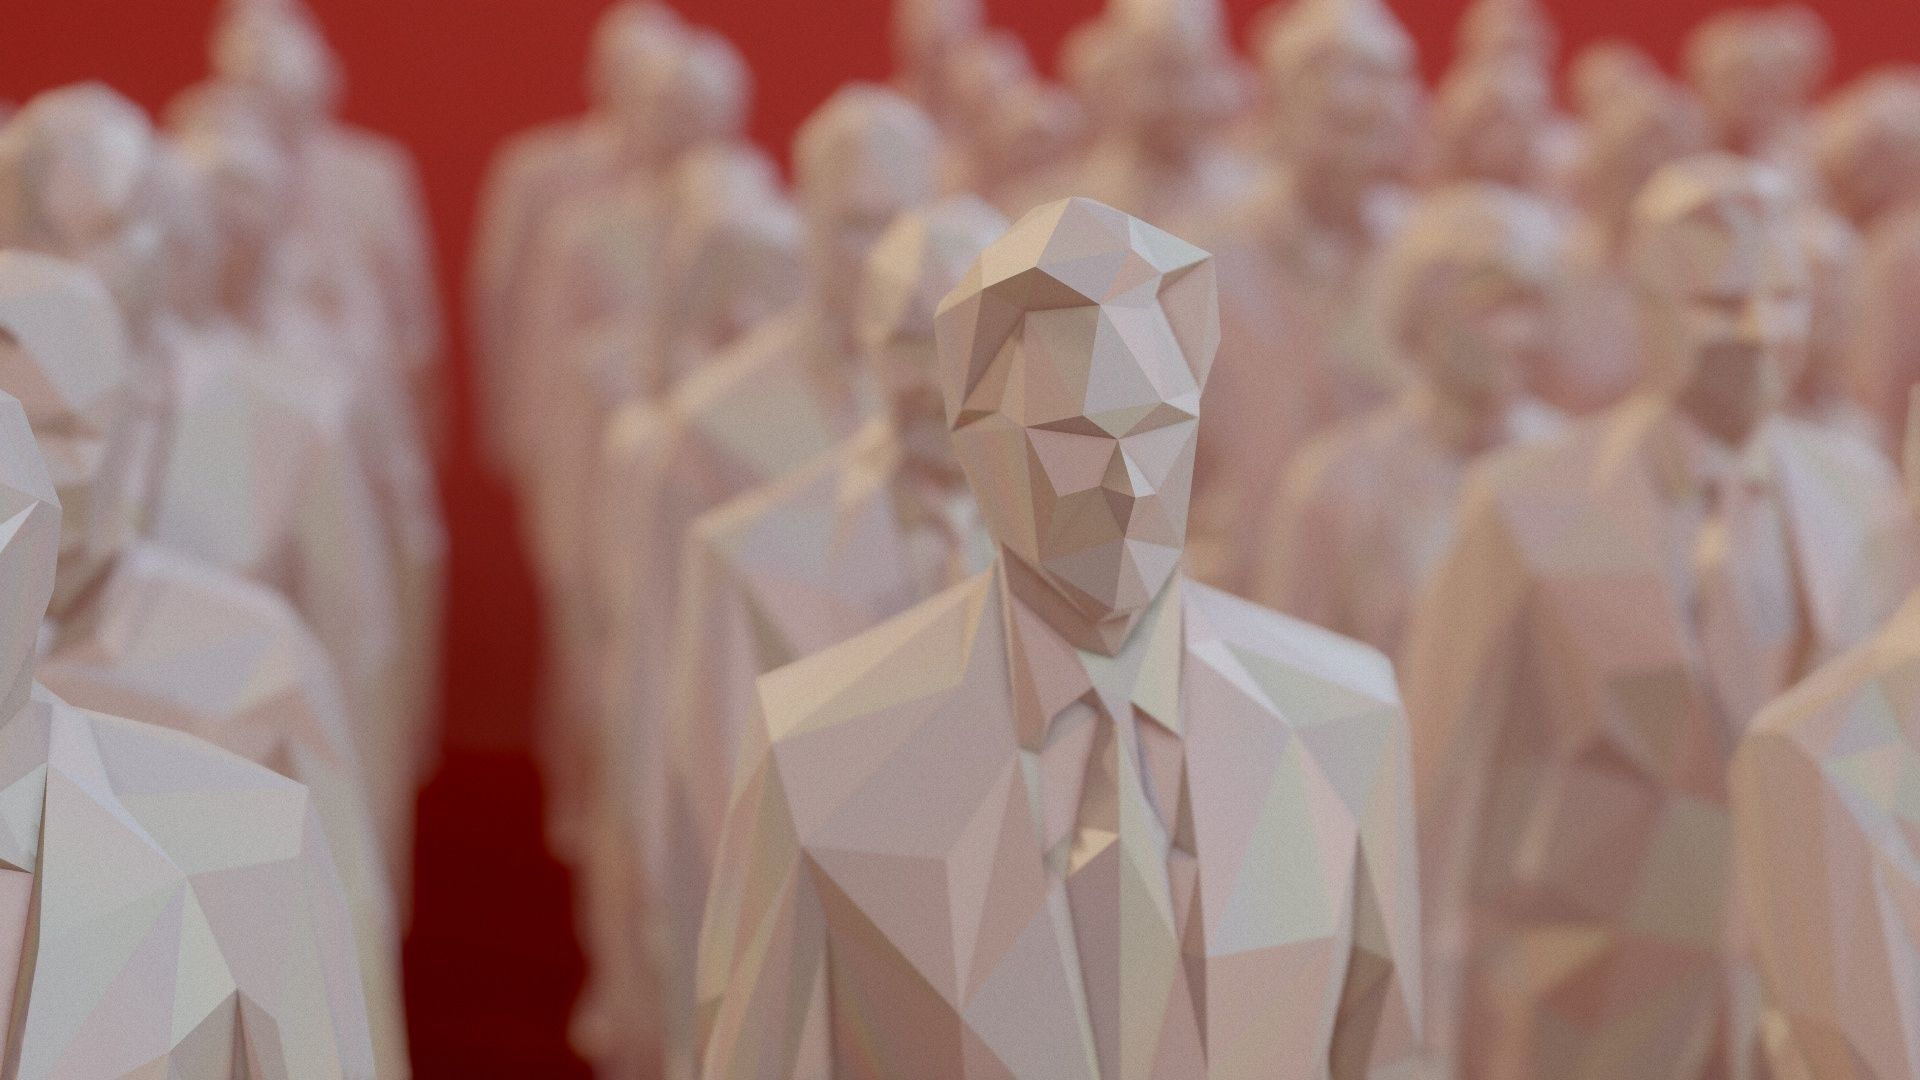 99 Low Poly Human People Figurines